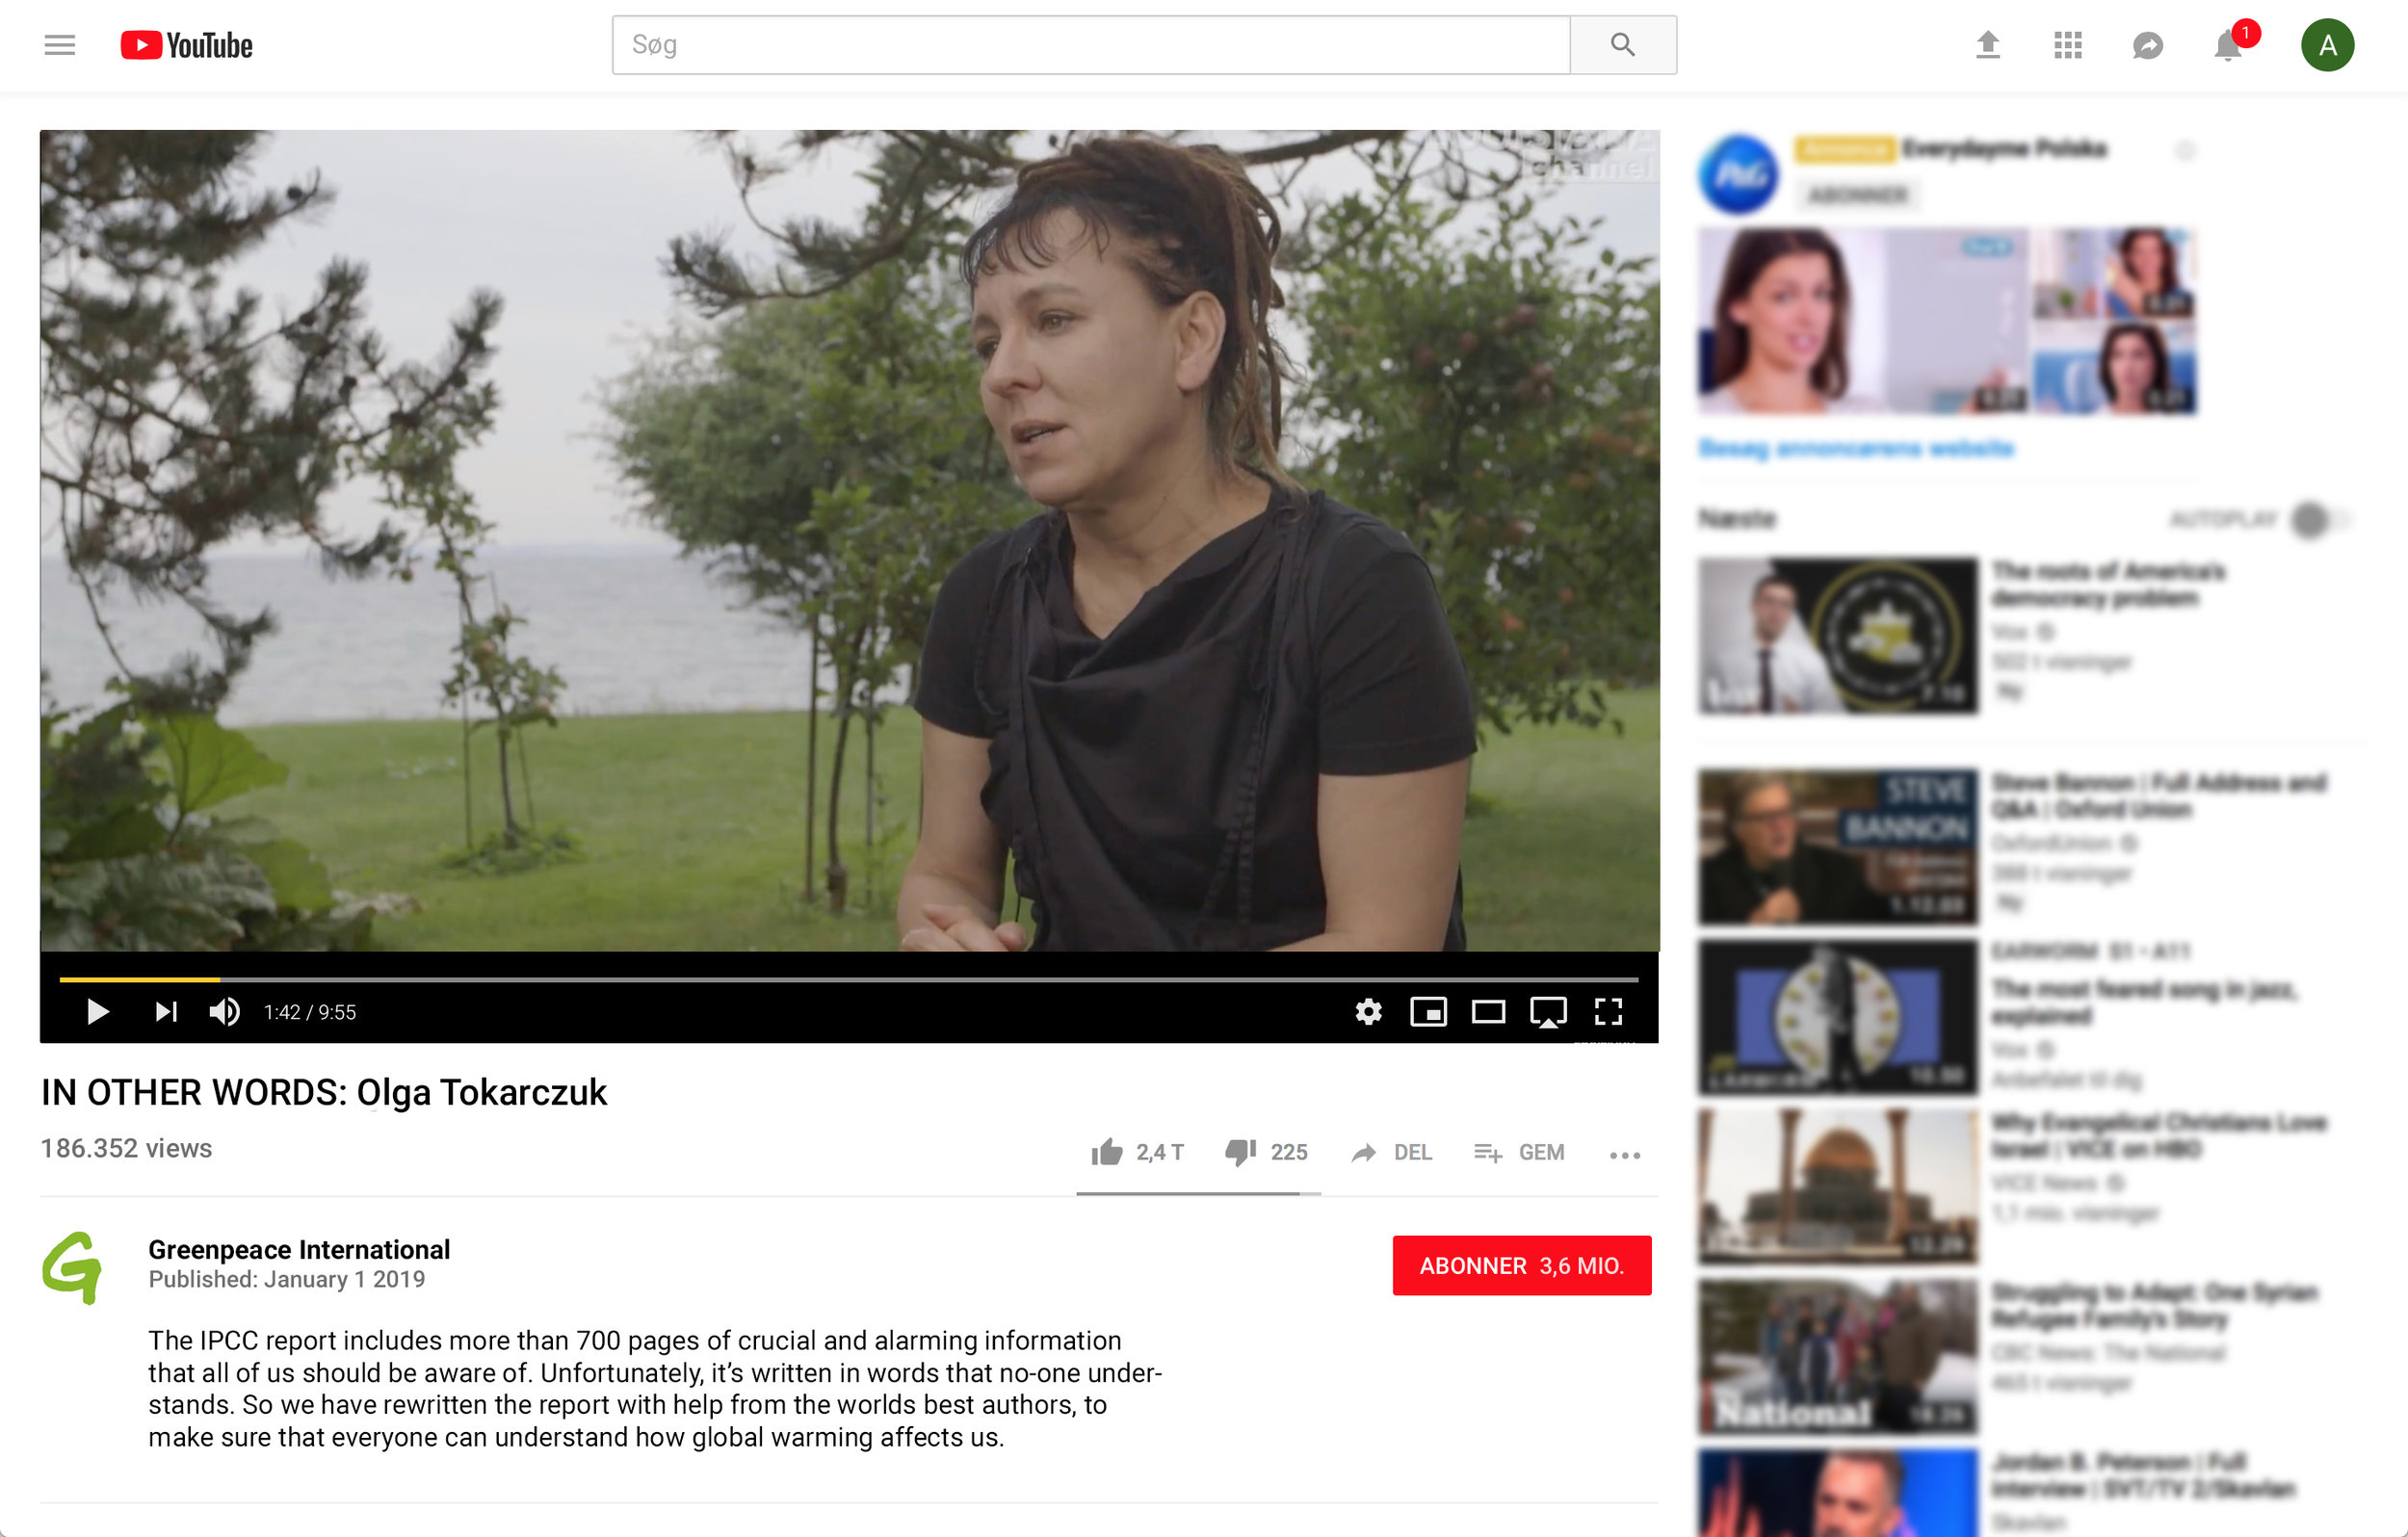 - We'll also create mini documentaries where the different authors visits places that has been damaged by global warming. In the videos they tell us how the visit has affected them, and their stories.